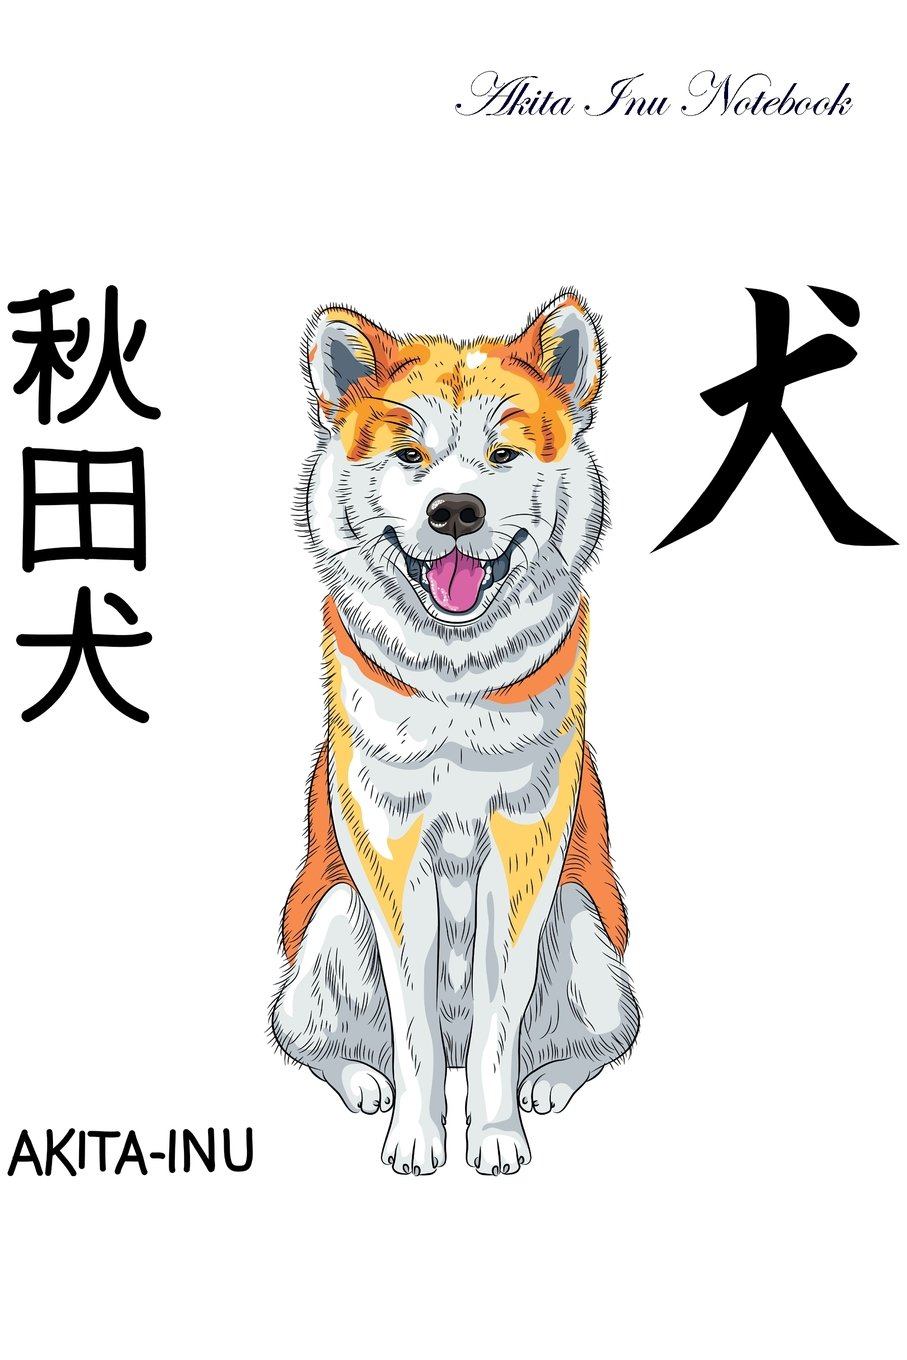 Read Online Akita Inu Notebook Record Journal, Diary, Special Memories, To Do List, Academic Notepad, and Much More pdf epub